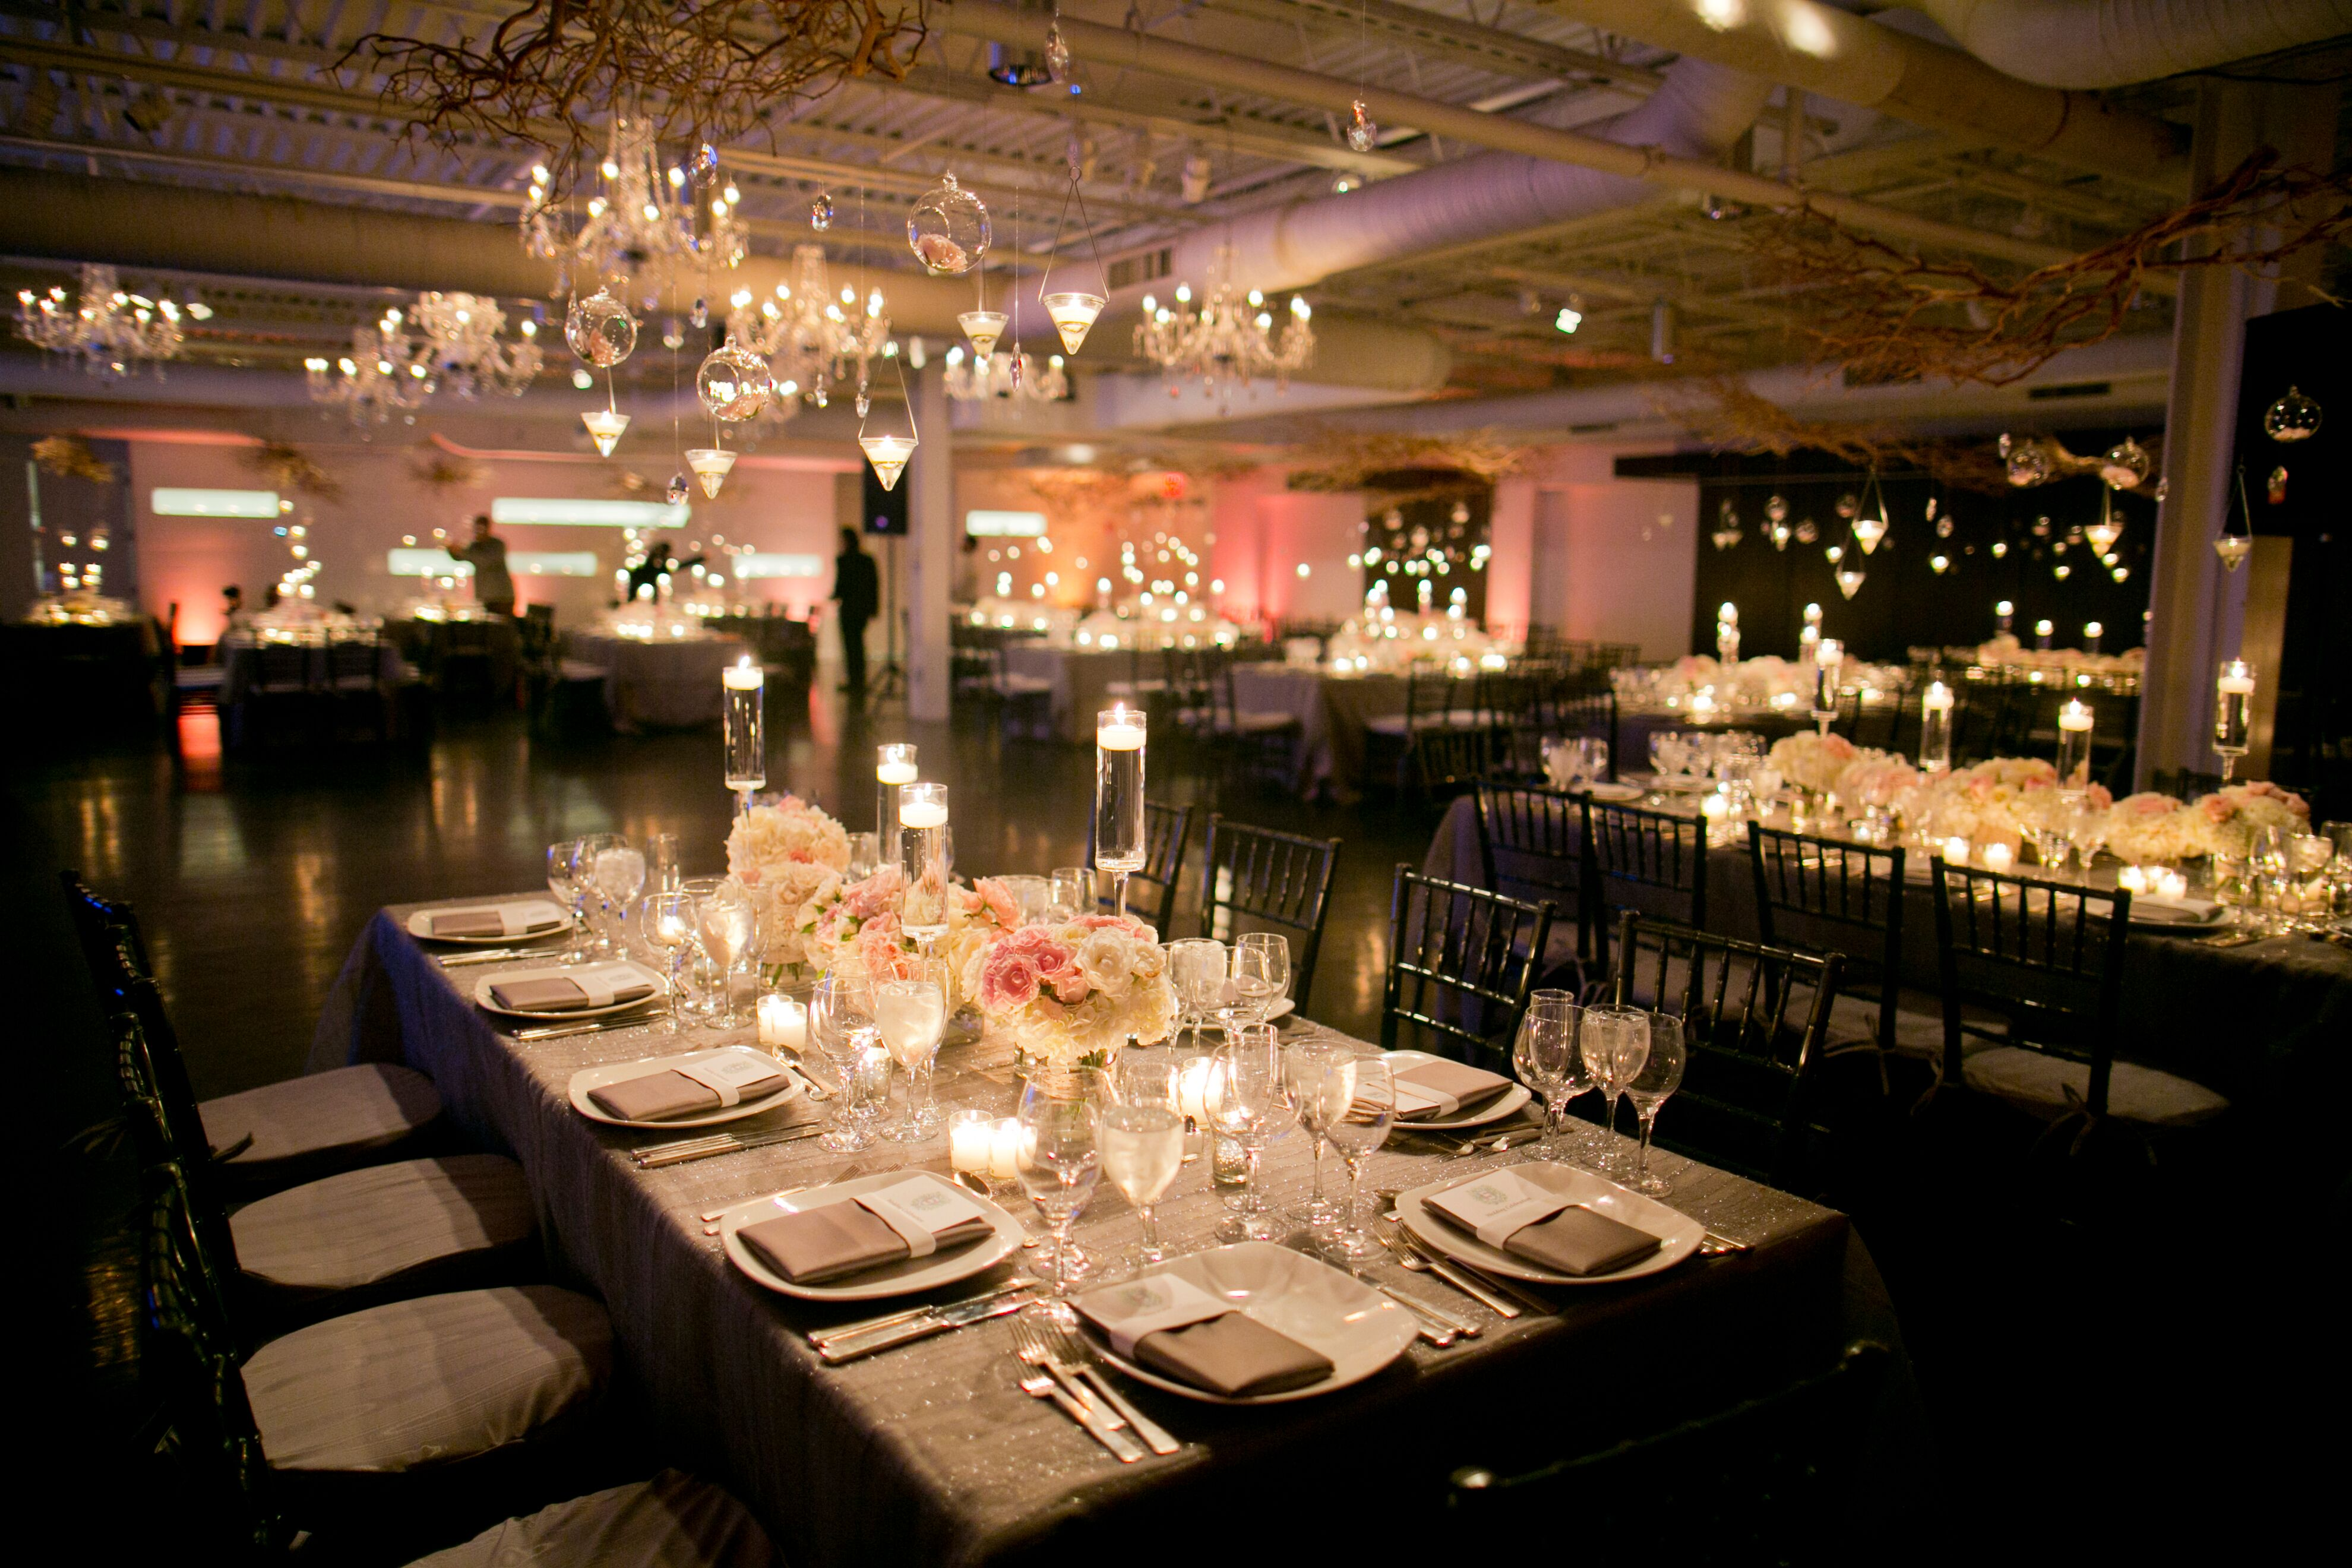 Wedding Reception Venues in Norwalk, CT - The Knot